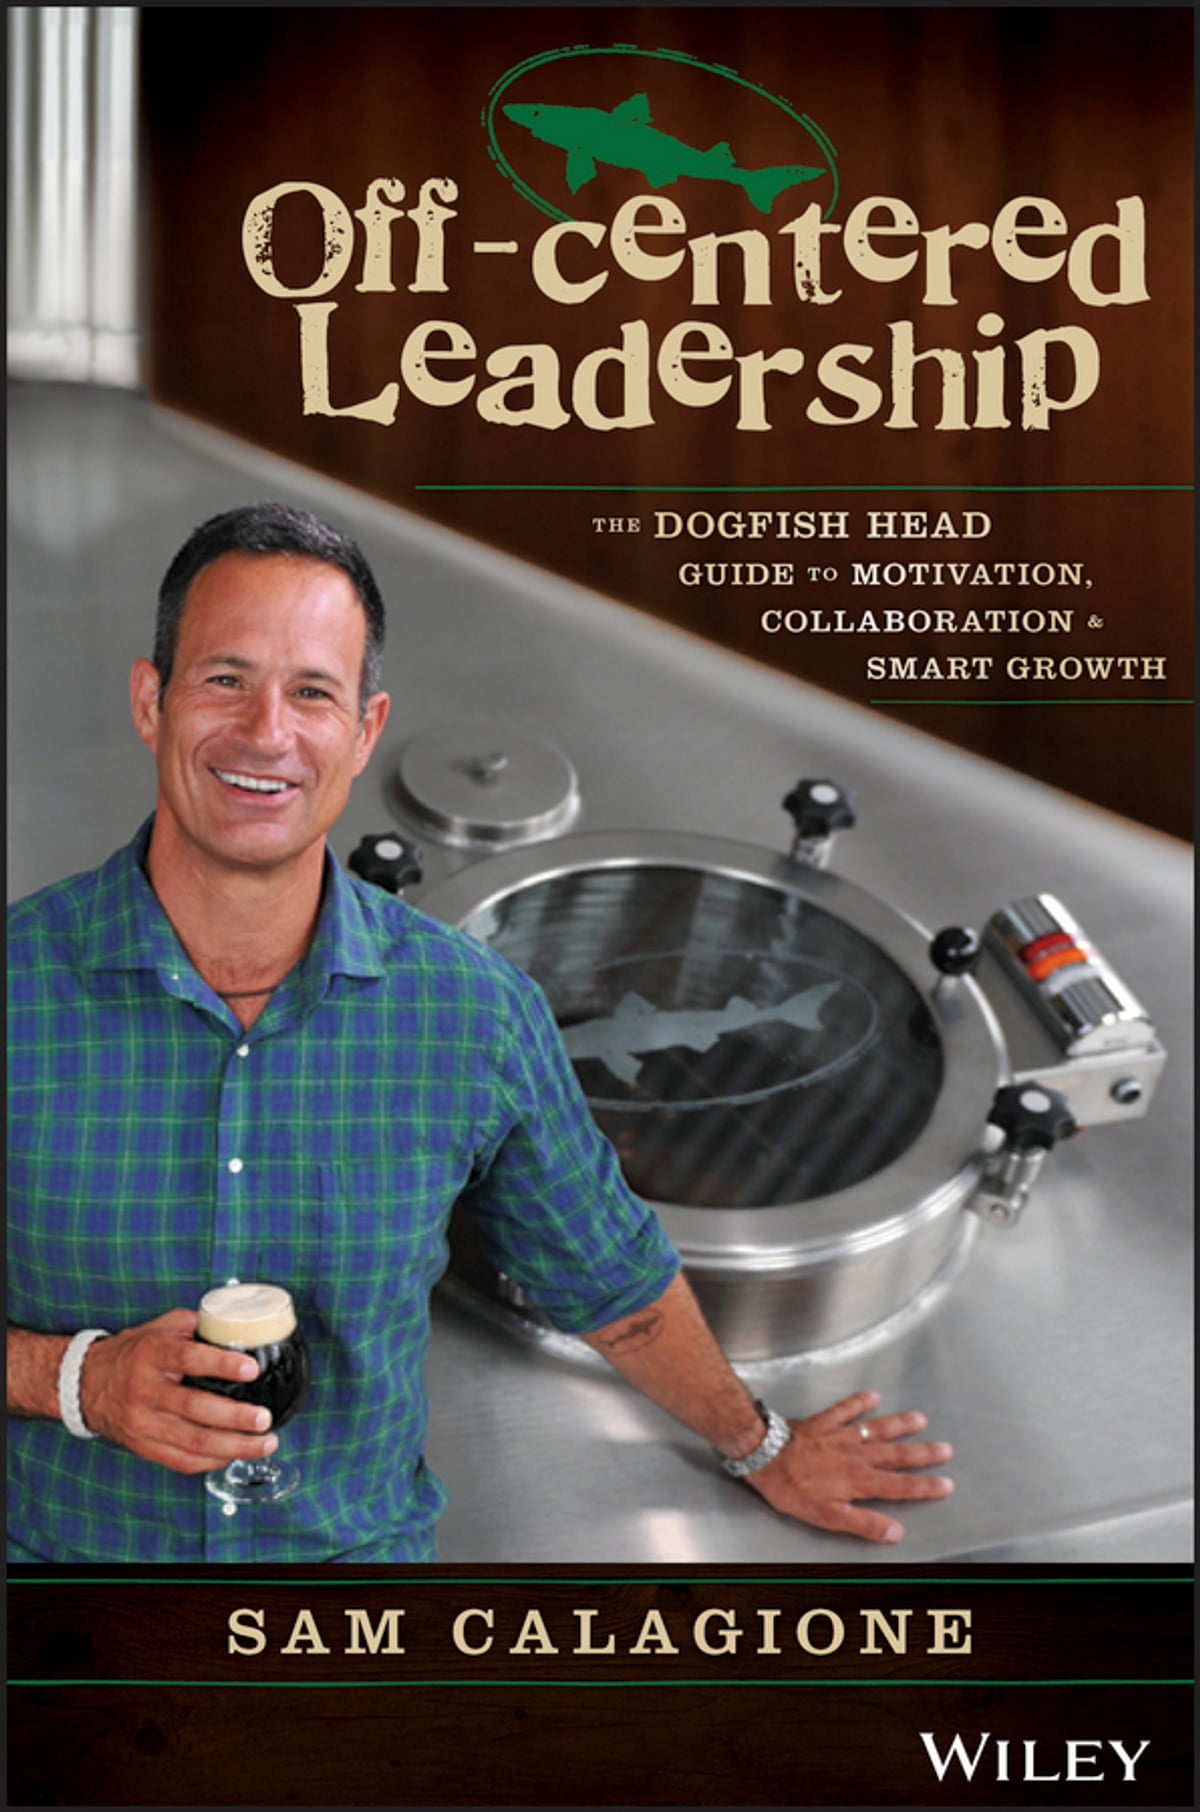 brewing up a business adventures in entrepreneurship from the founder of dogfish head craft brewery